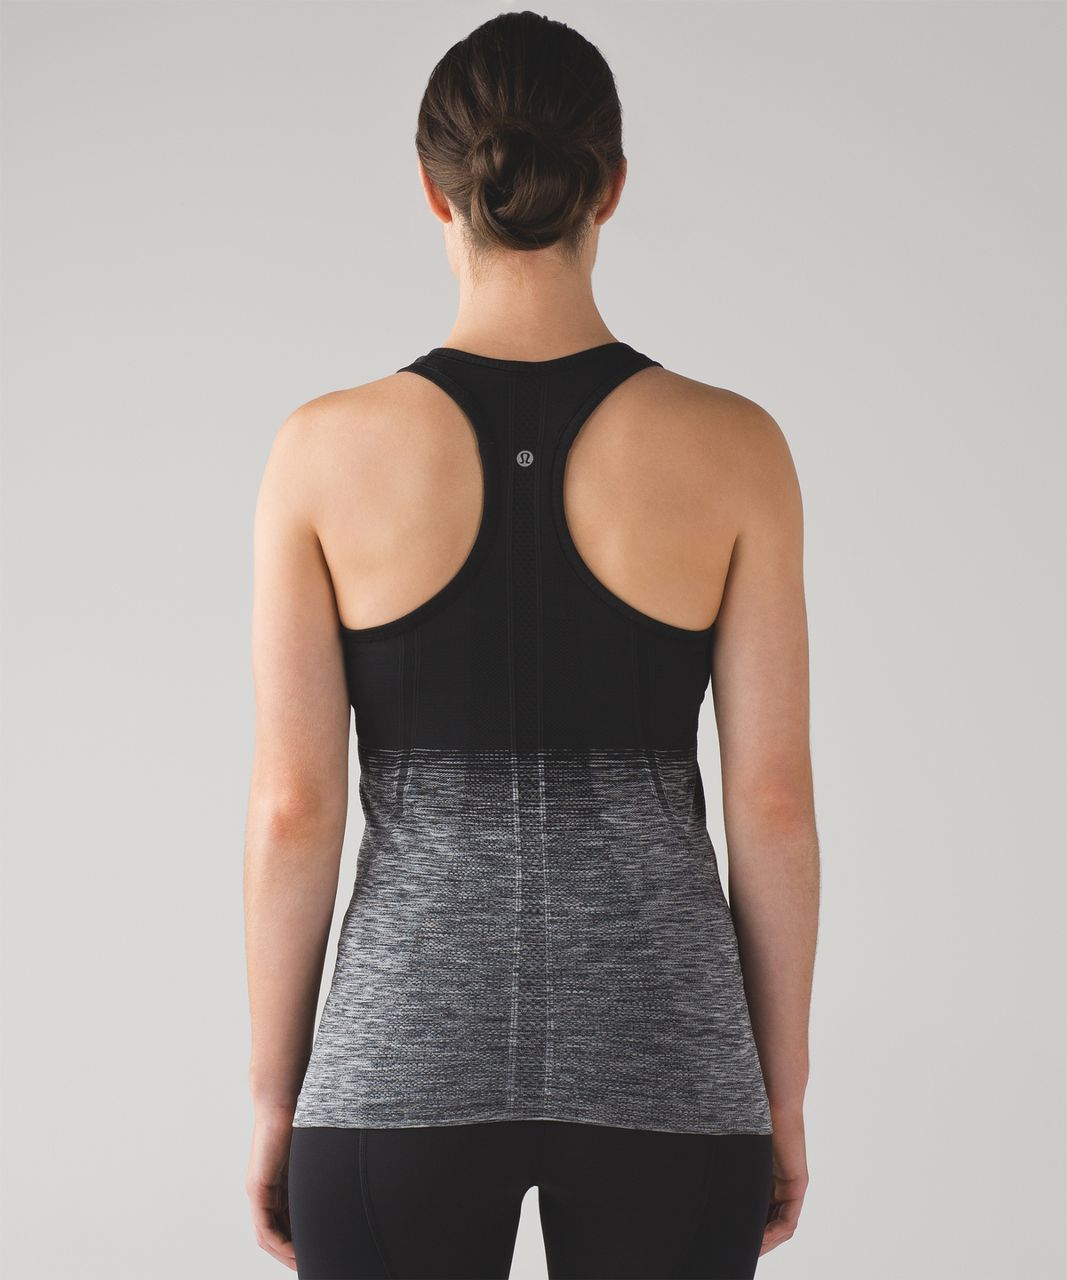 Lululemon Swiftly Tech Racerback - White / Black